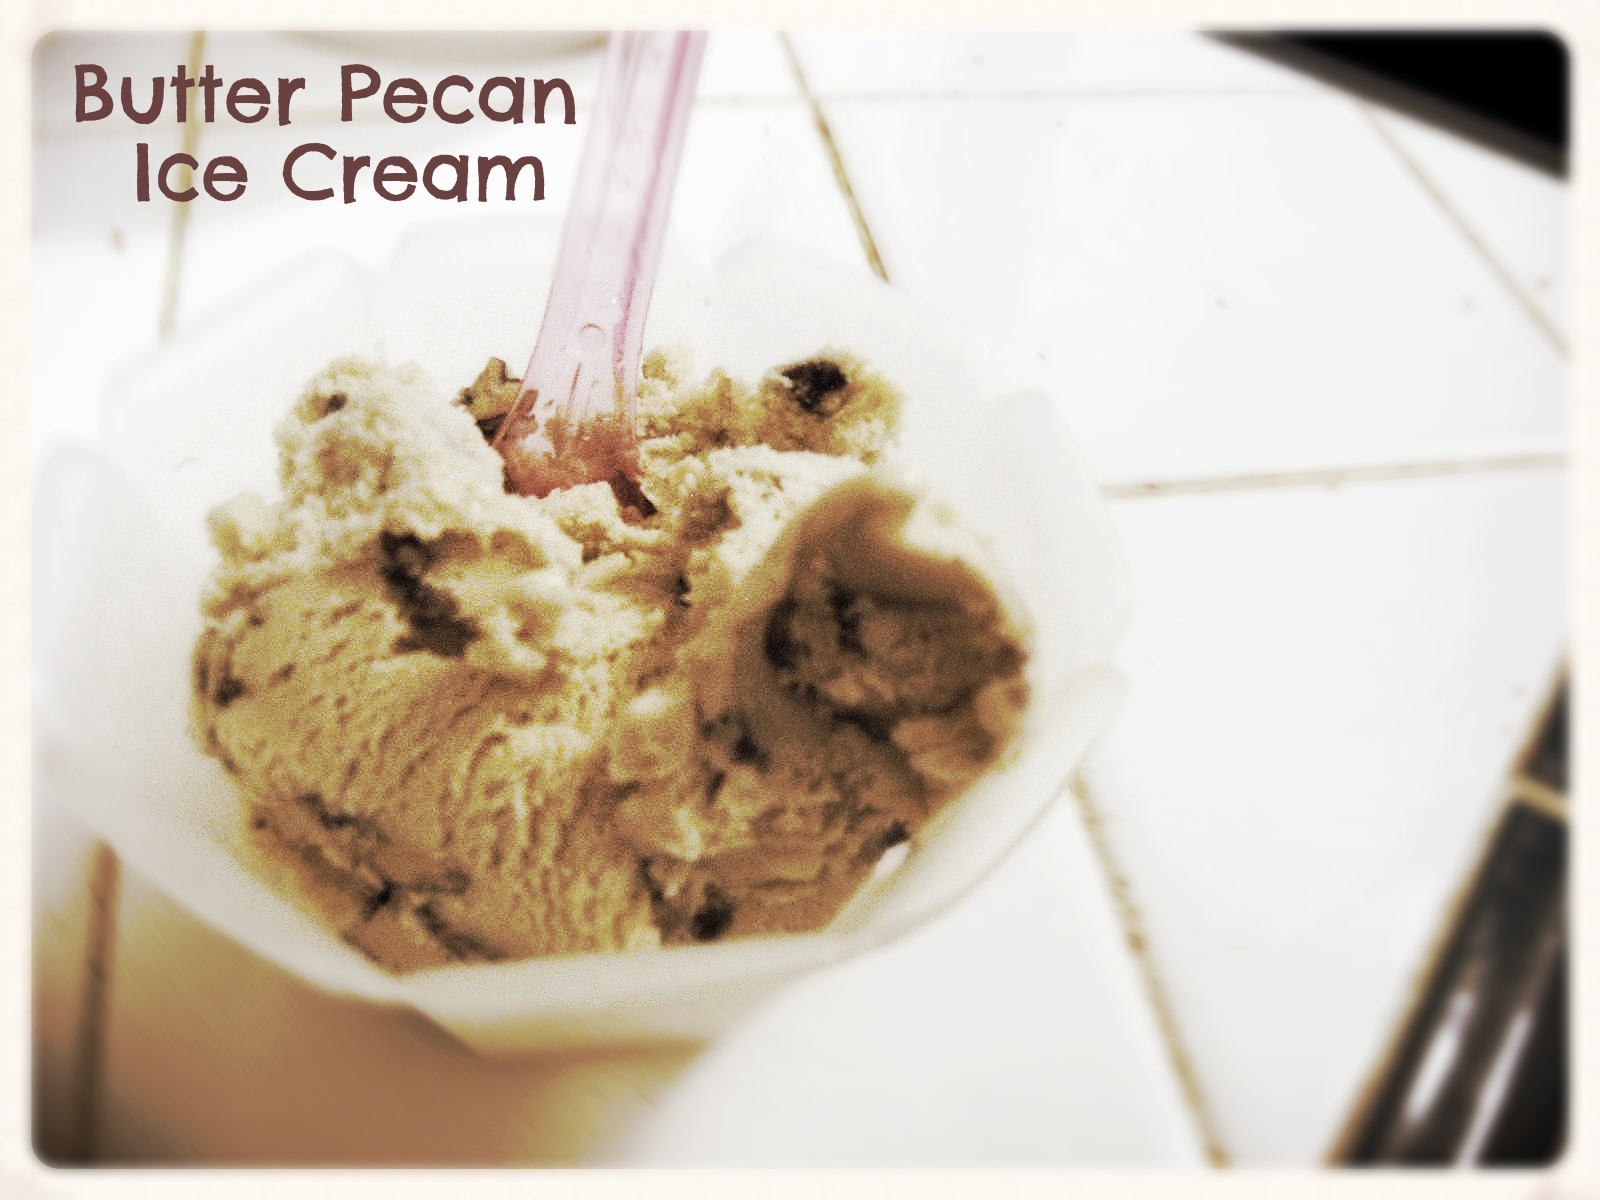 Butter Pecan Ice Cream by freshfromthe.com